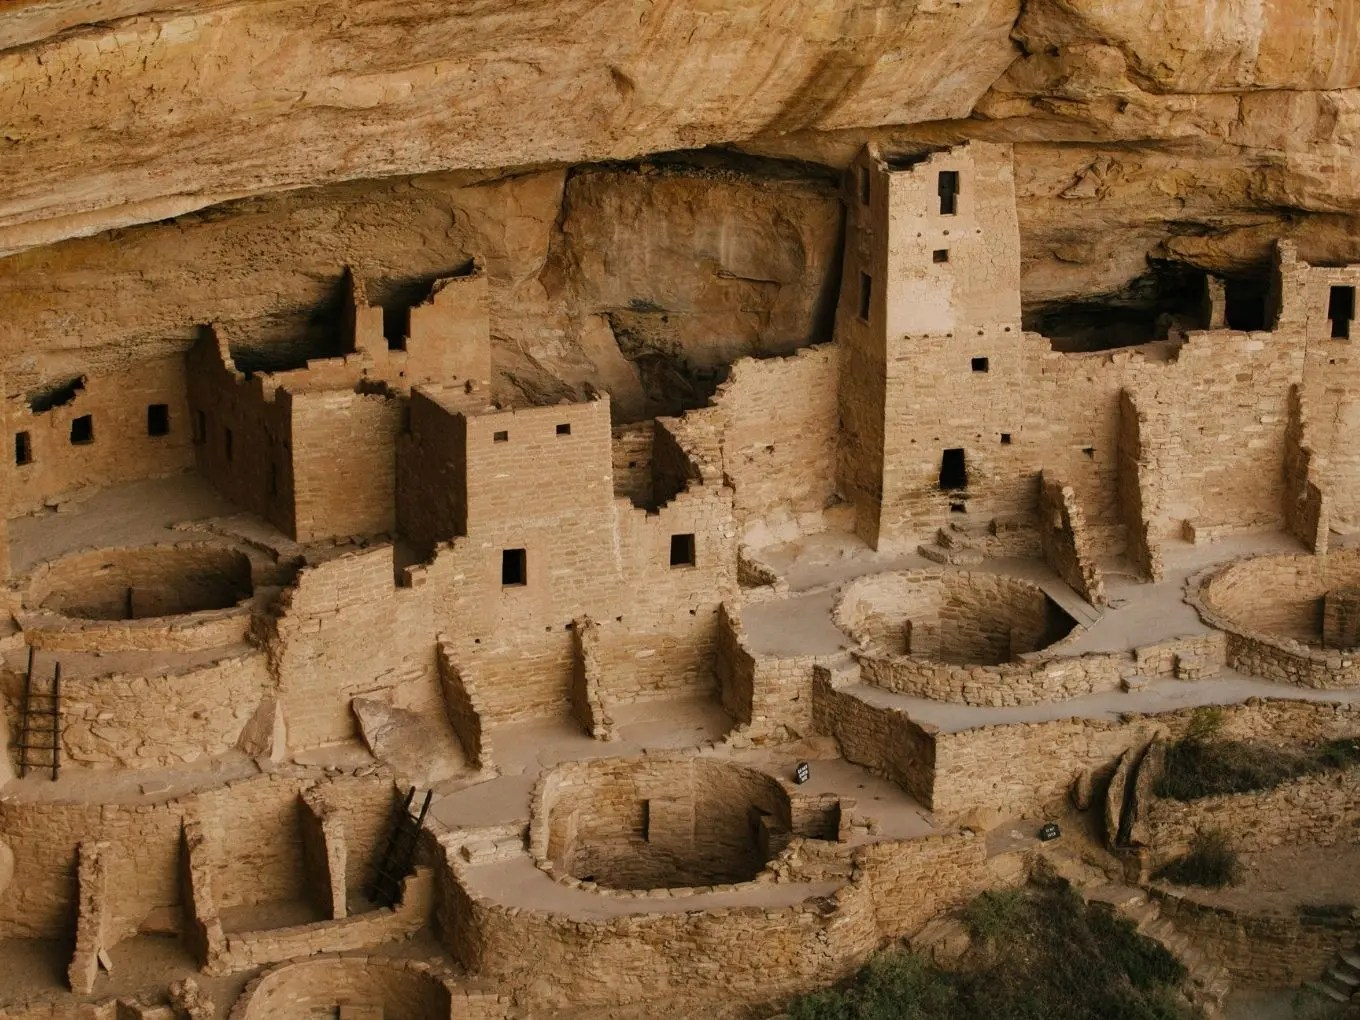 Getting To Mesa Verde National Park